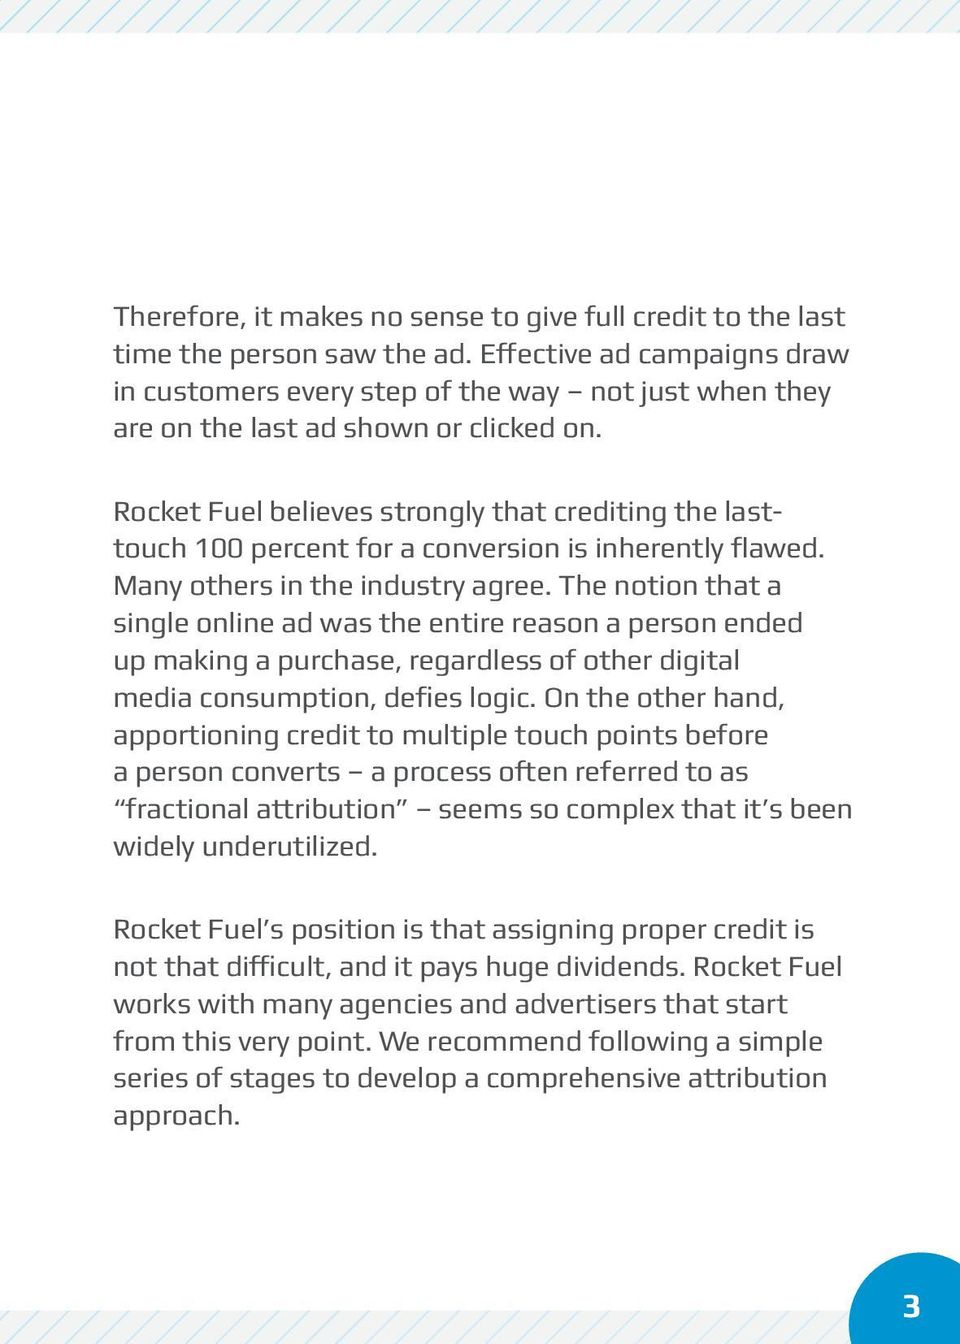 Rocket Fuel believes strongly that crediting the lasttouch 100 percent for a conversion is inherently flawed. Many others in the industry agree.